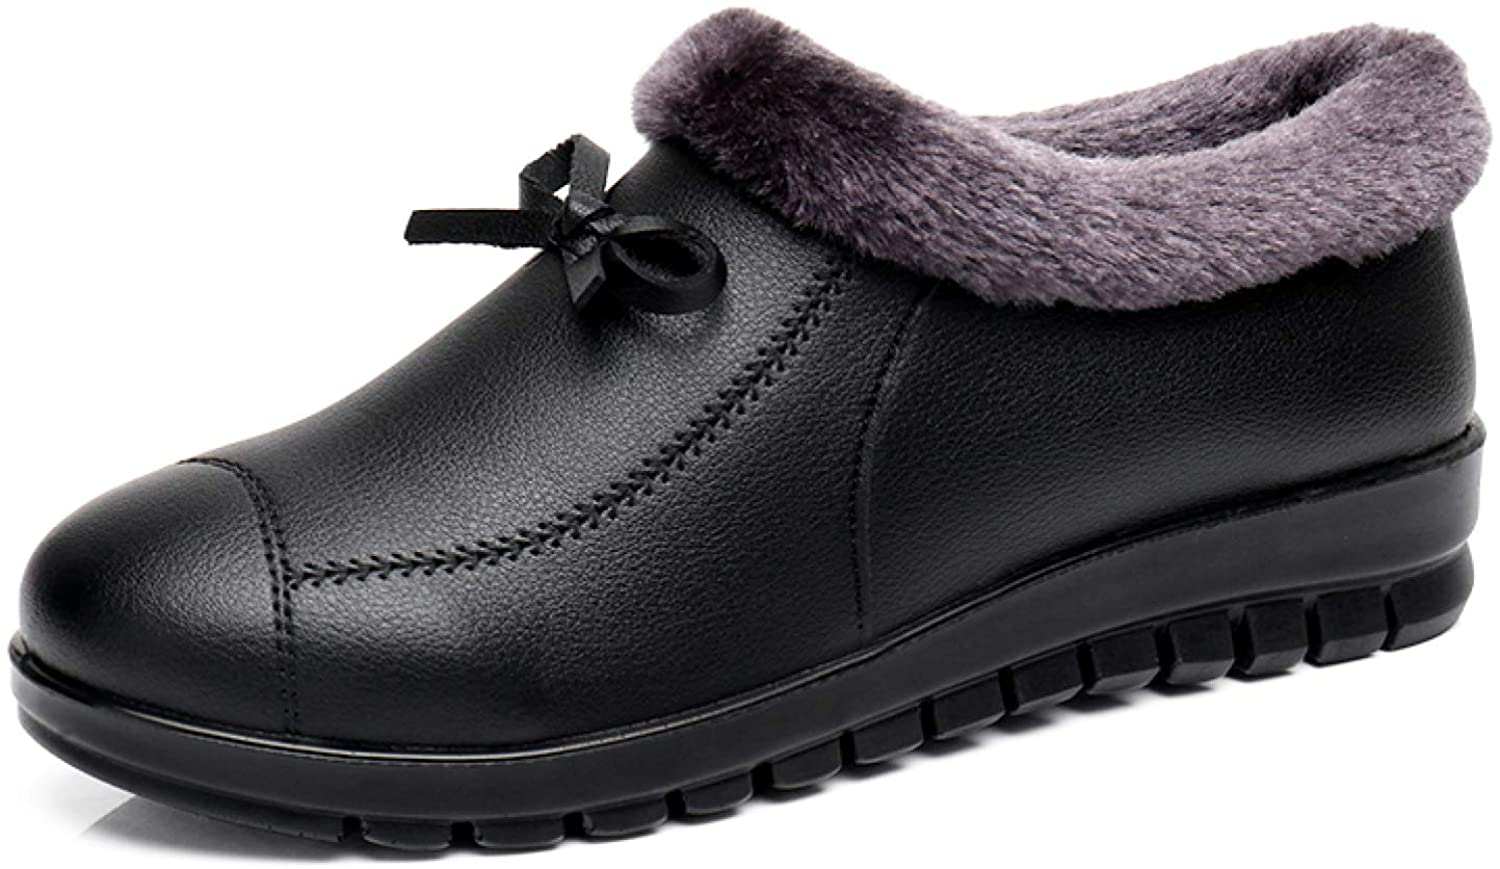 Womens Slip On Winter Keep Warm Ankle Booties Flat Heel Non Slip Comfort Daily Walking Shoes Booties for Mother Grandma